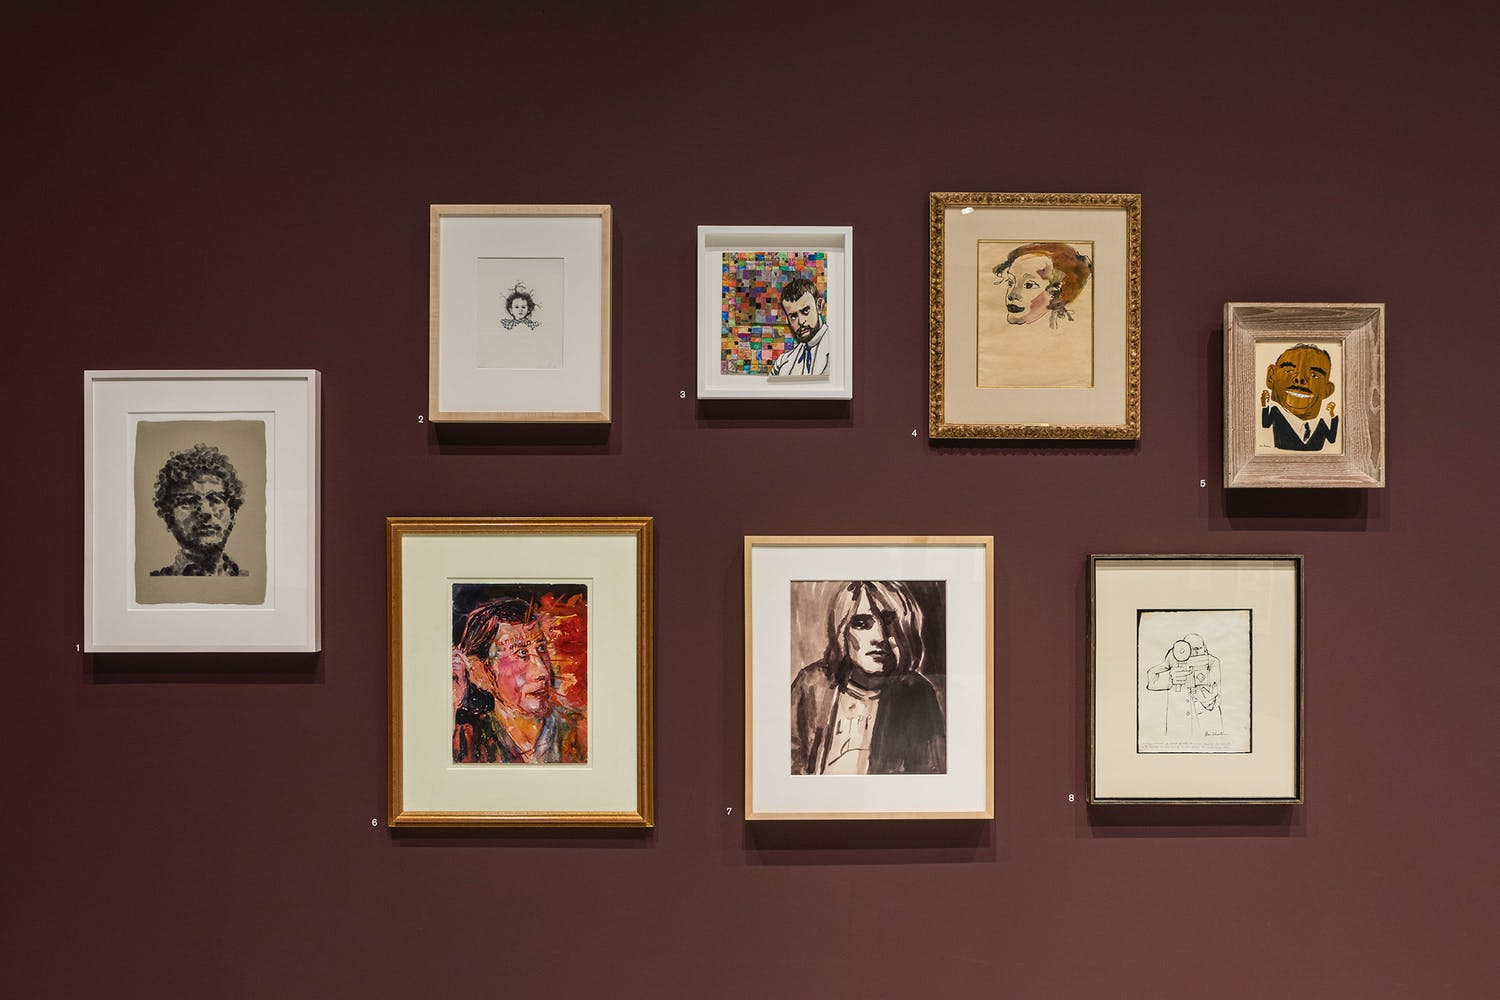 Paintings hung on a brown wall.